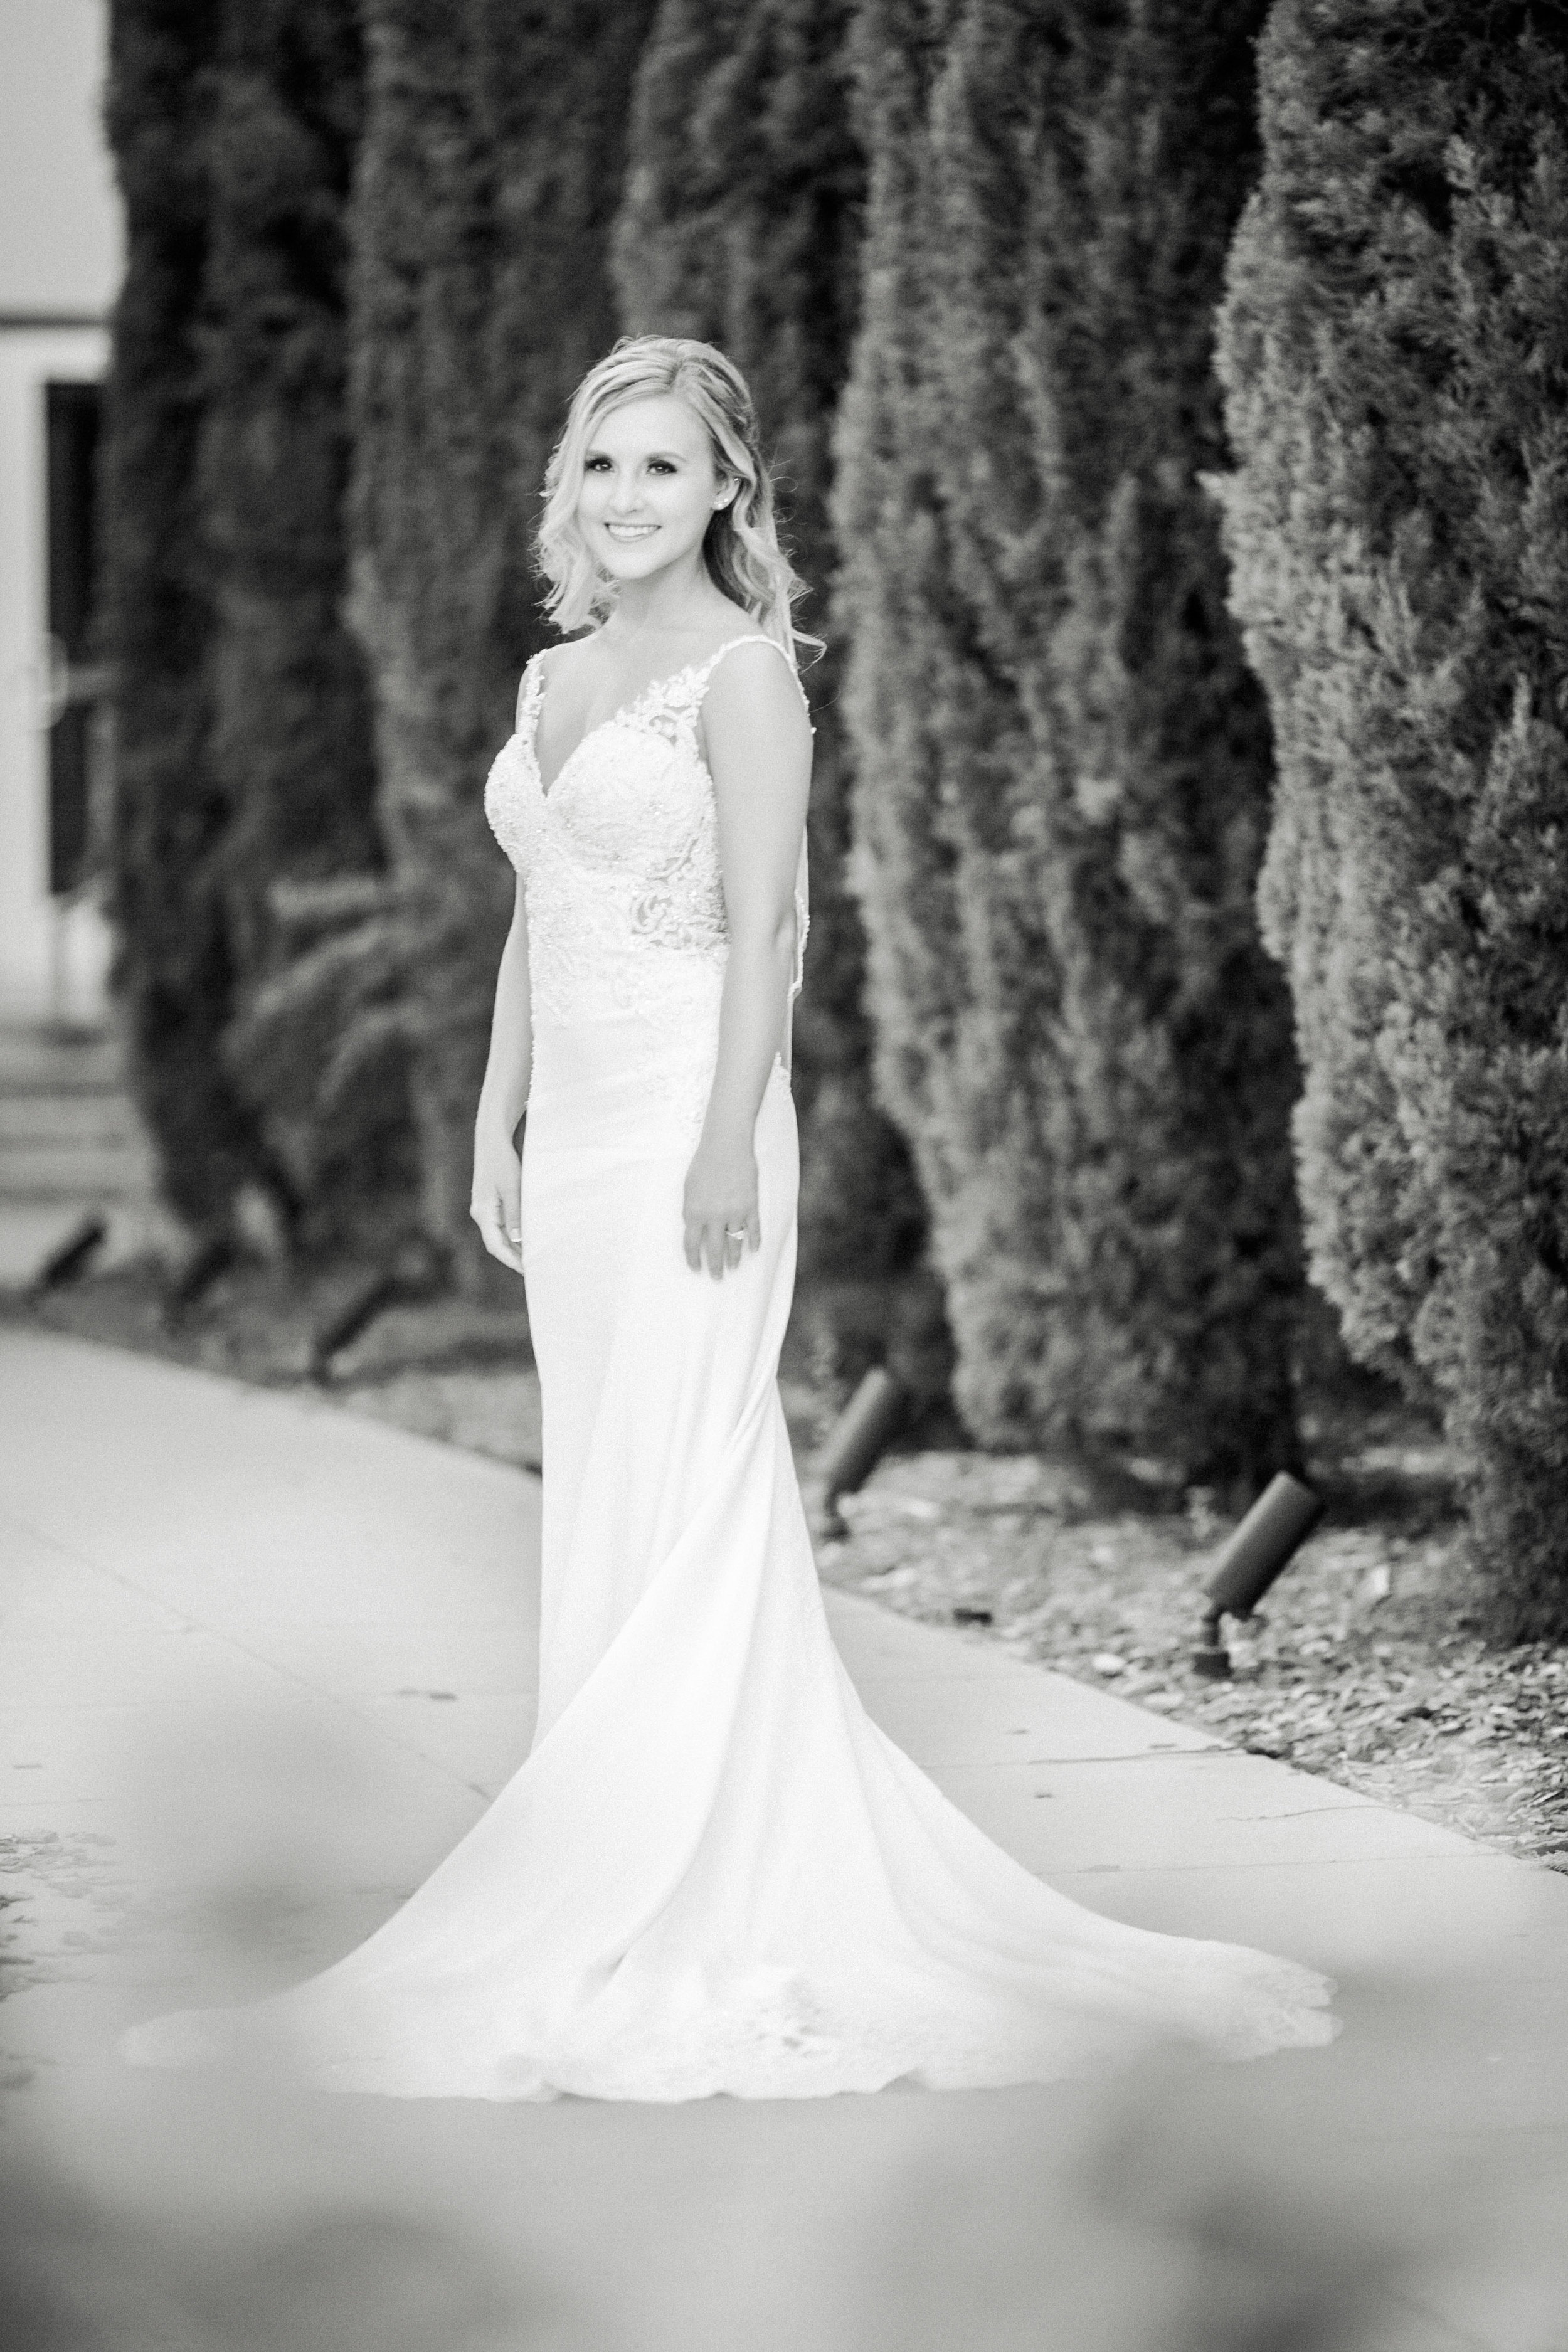 xKelsey-Bridals-126-BW.jpg